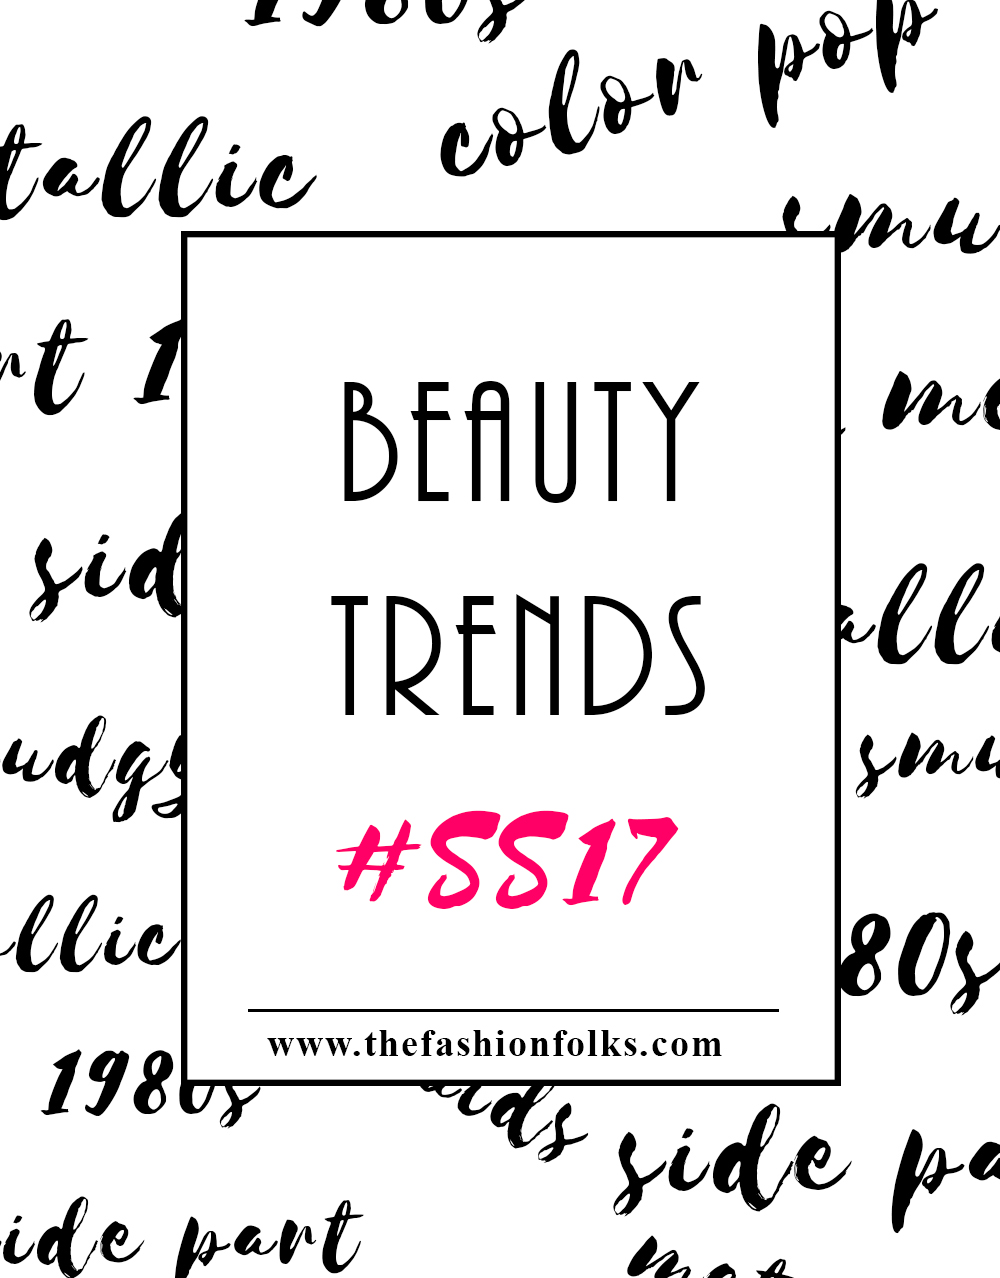 Beauty Trends Spring 2017 | The Fashion Folks